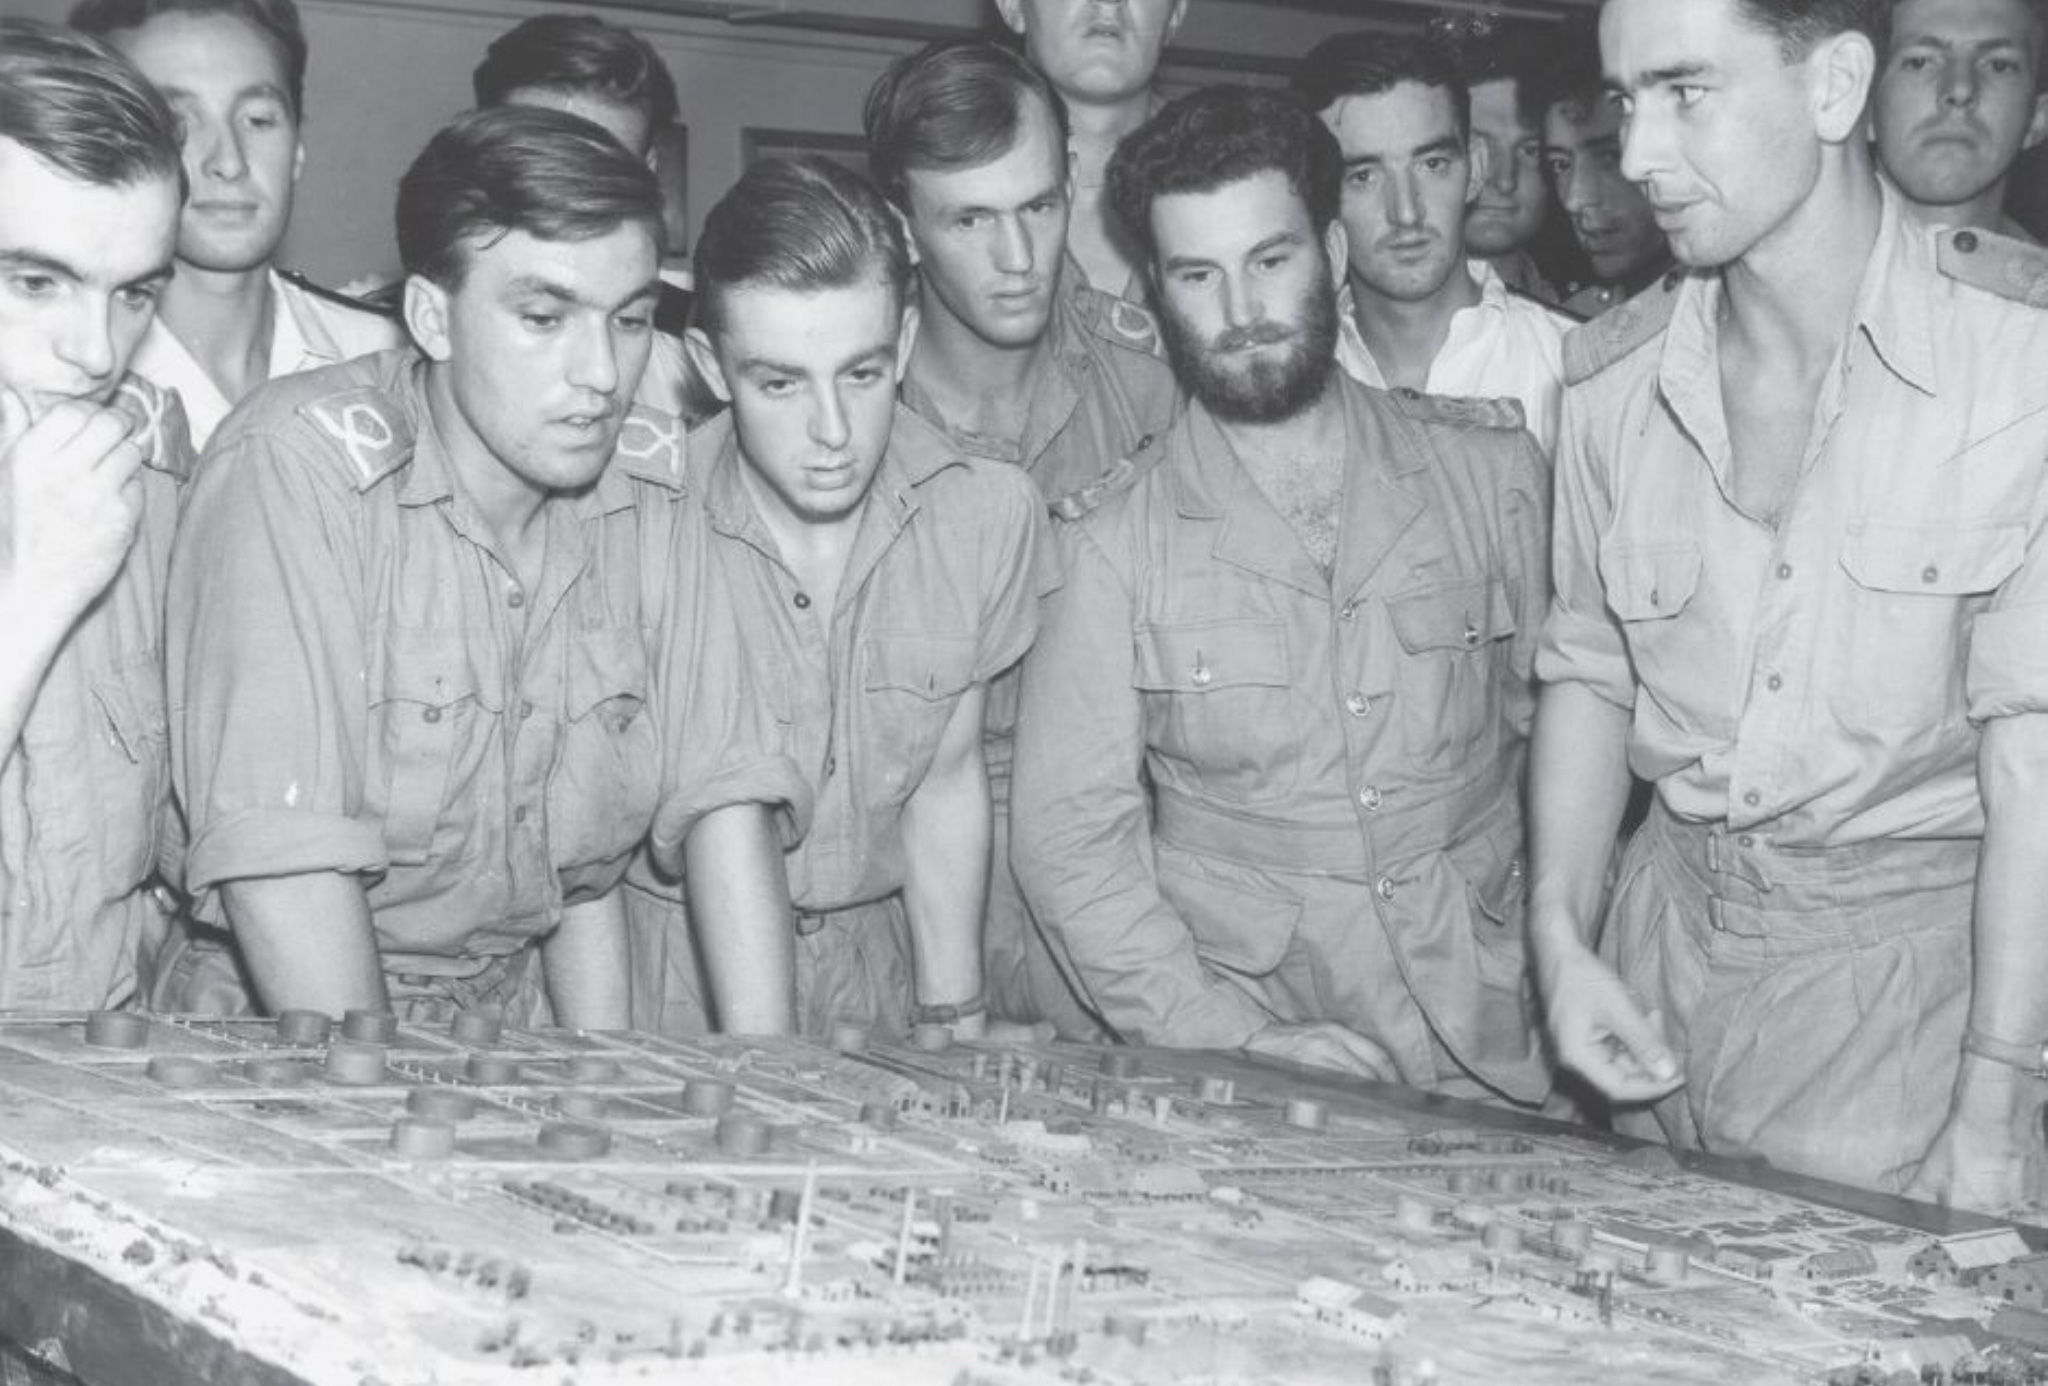 Lieutenant Commander Mainprice, right, briefs the pilots and aircrew of 854 Avenger squadron over a detailed model aboard HMS Illustrious .